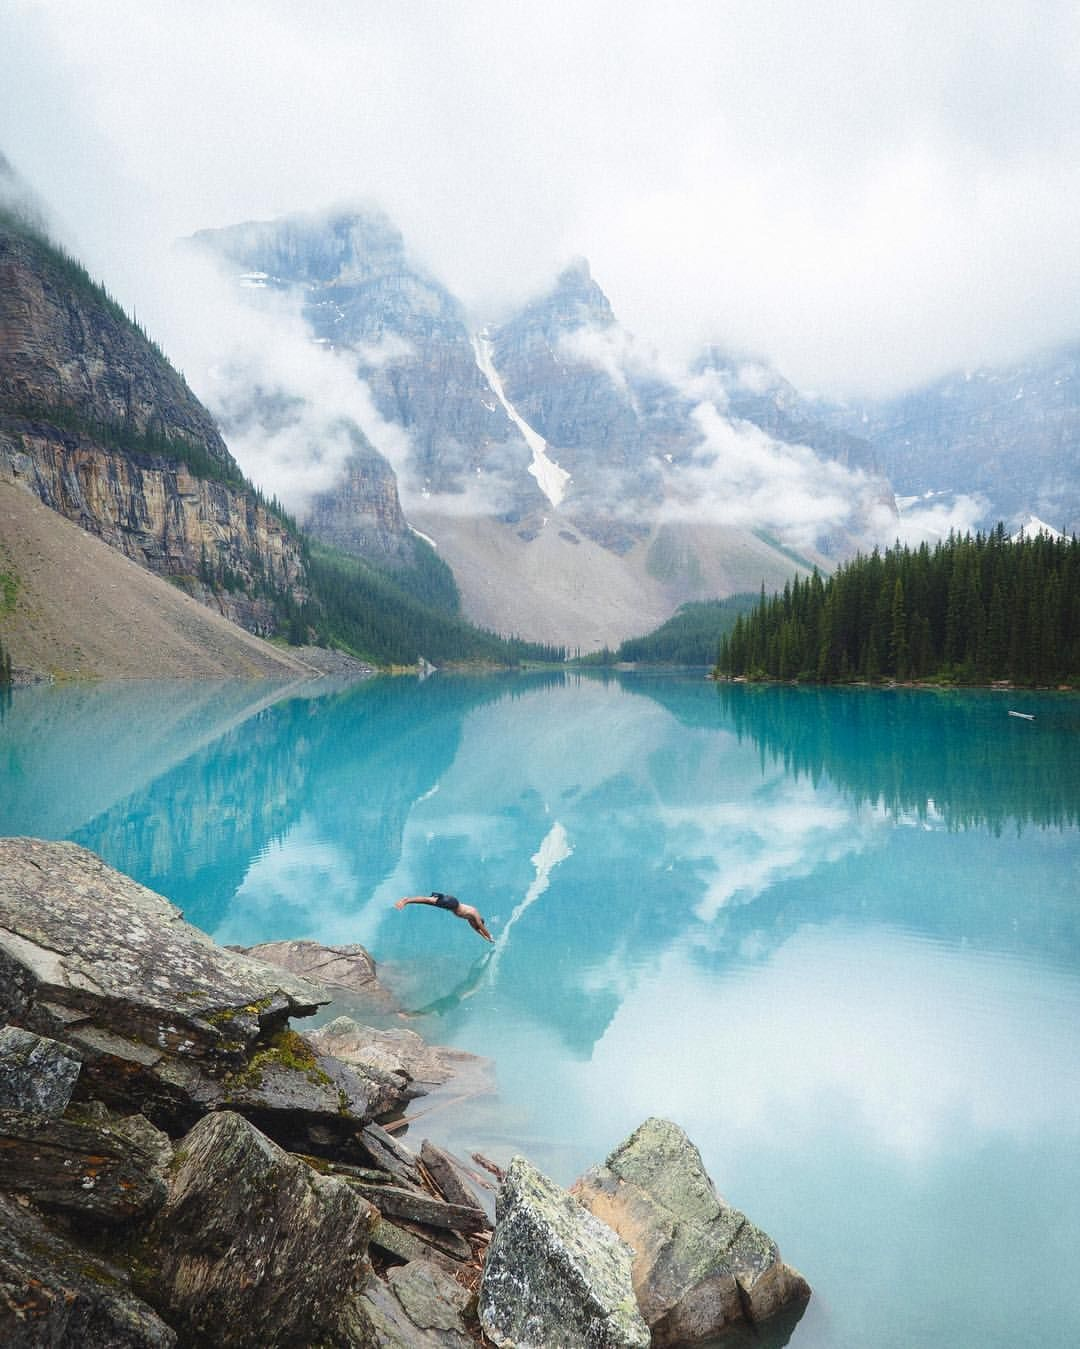 """Passion Passport on Instagram: """"""""When we first arrived, fog drowned out every peak surrounding Lake Moraine. Nothing could be seen but a near perfect reflection of the clouds. But as soon as the fog lifted, it took very little to convince my friend to dive into the cold, glacial water."""" -@babytraven Moraine Lake, Canada #passionpassport"""""""